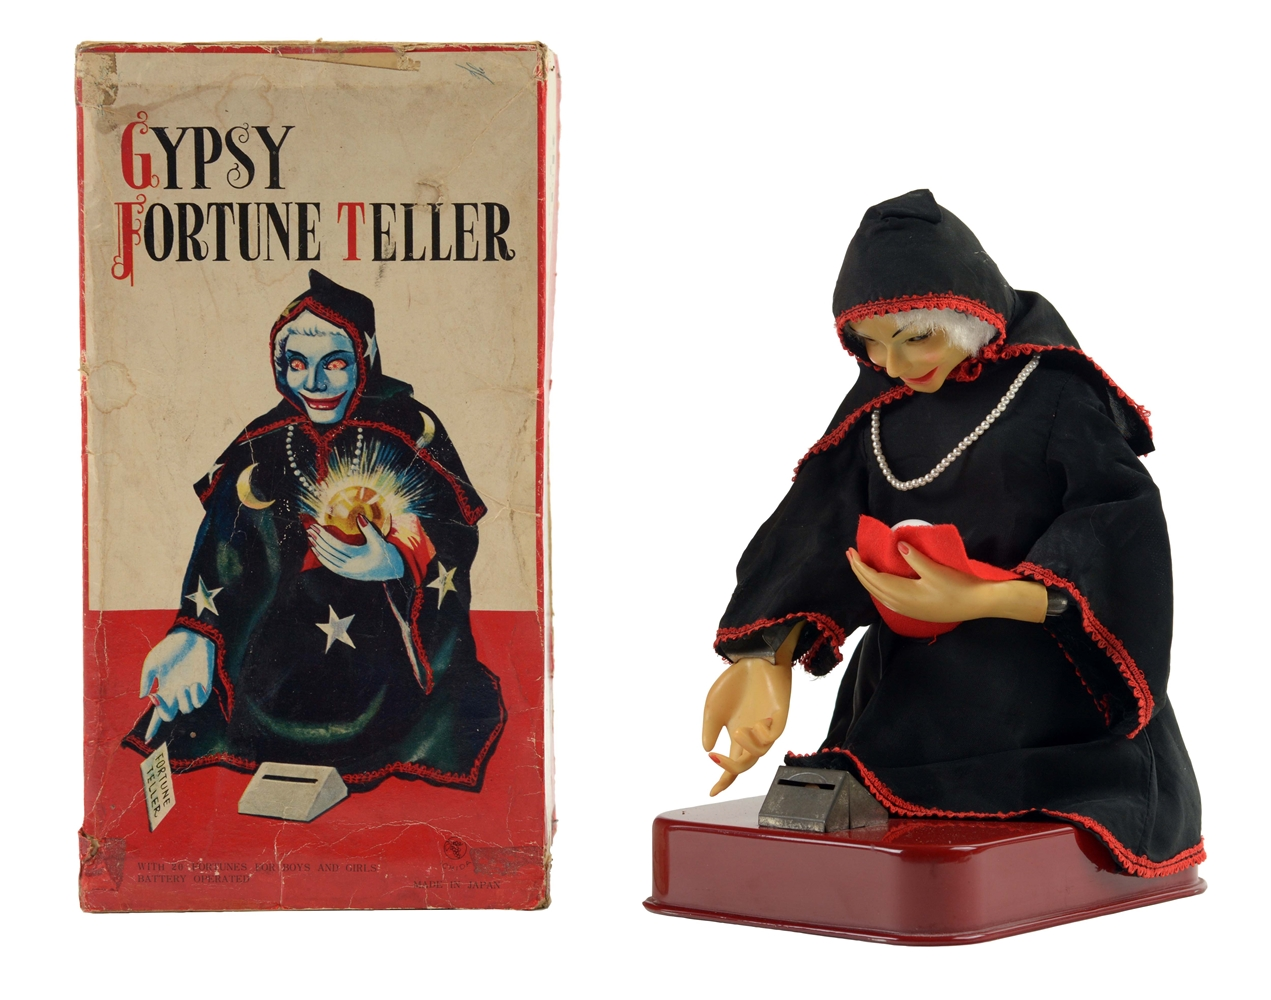 Japanese Battery Operated Gypsy Fortune Teller Toy.